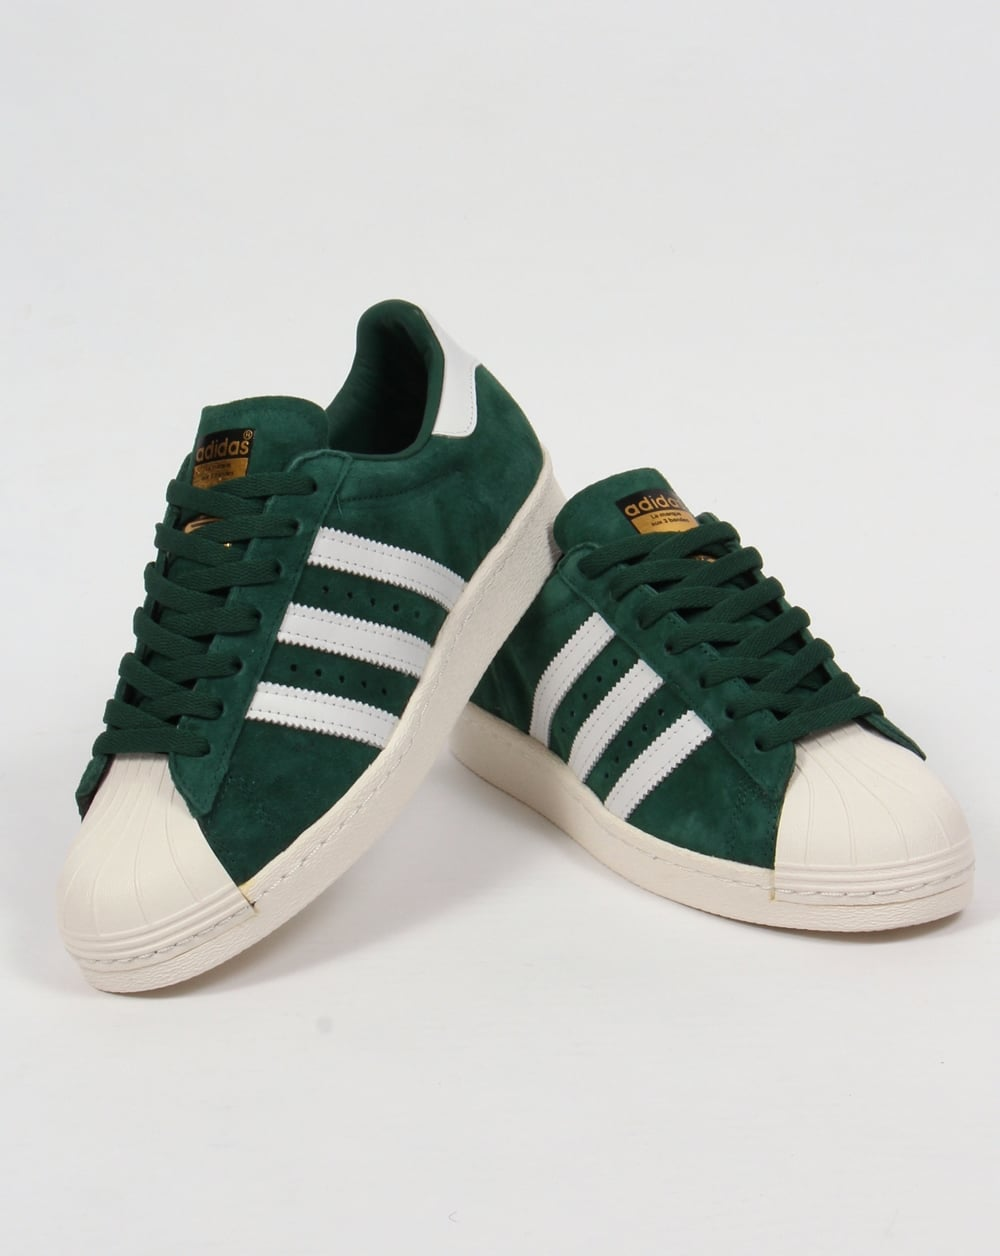 Kids Shoes | Adidas Superstar 80s Metal Toe Trainers (Kids